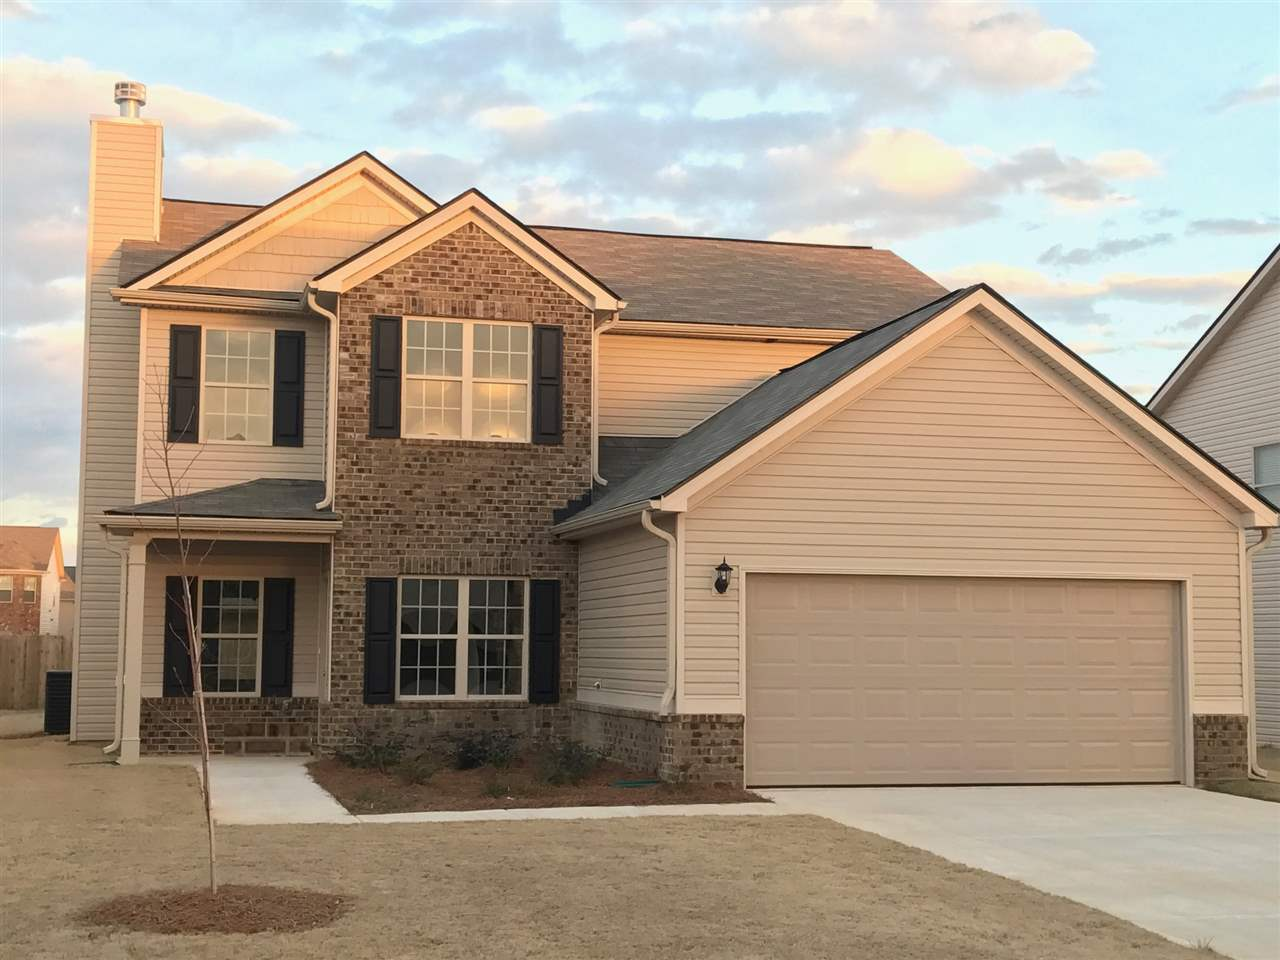 Homes For Sale In Byron Ga Under 200k